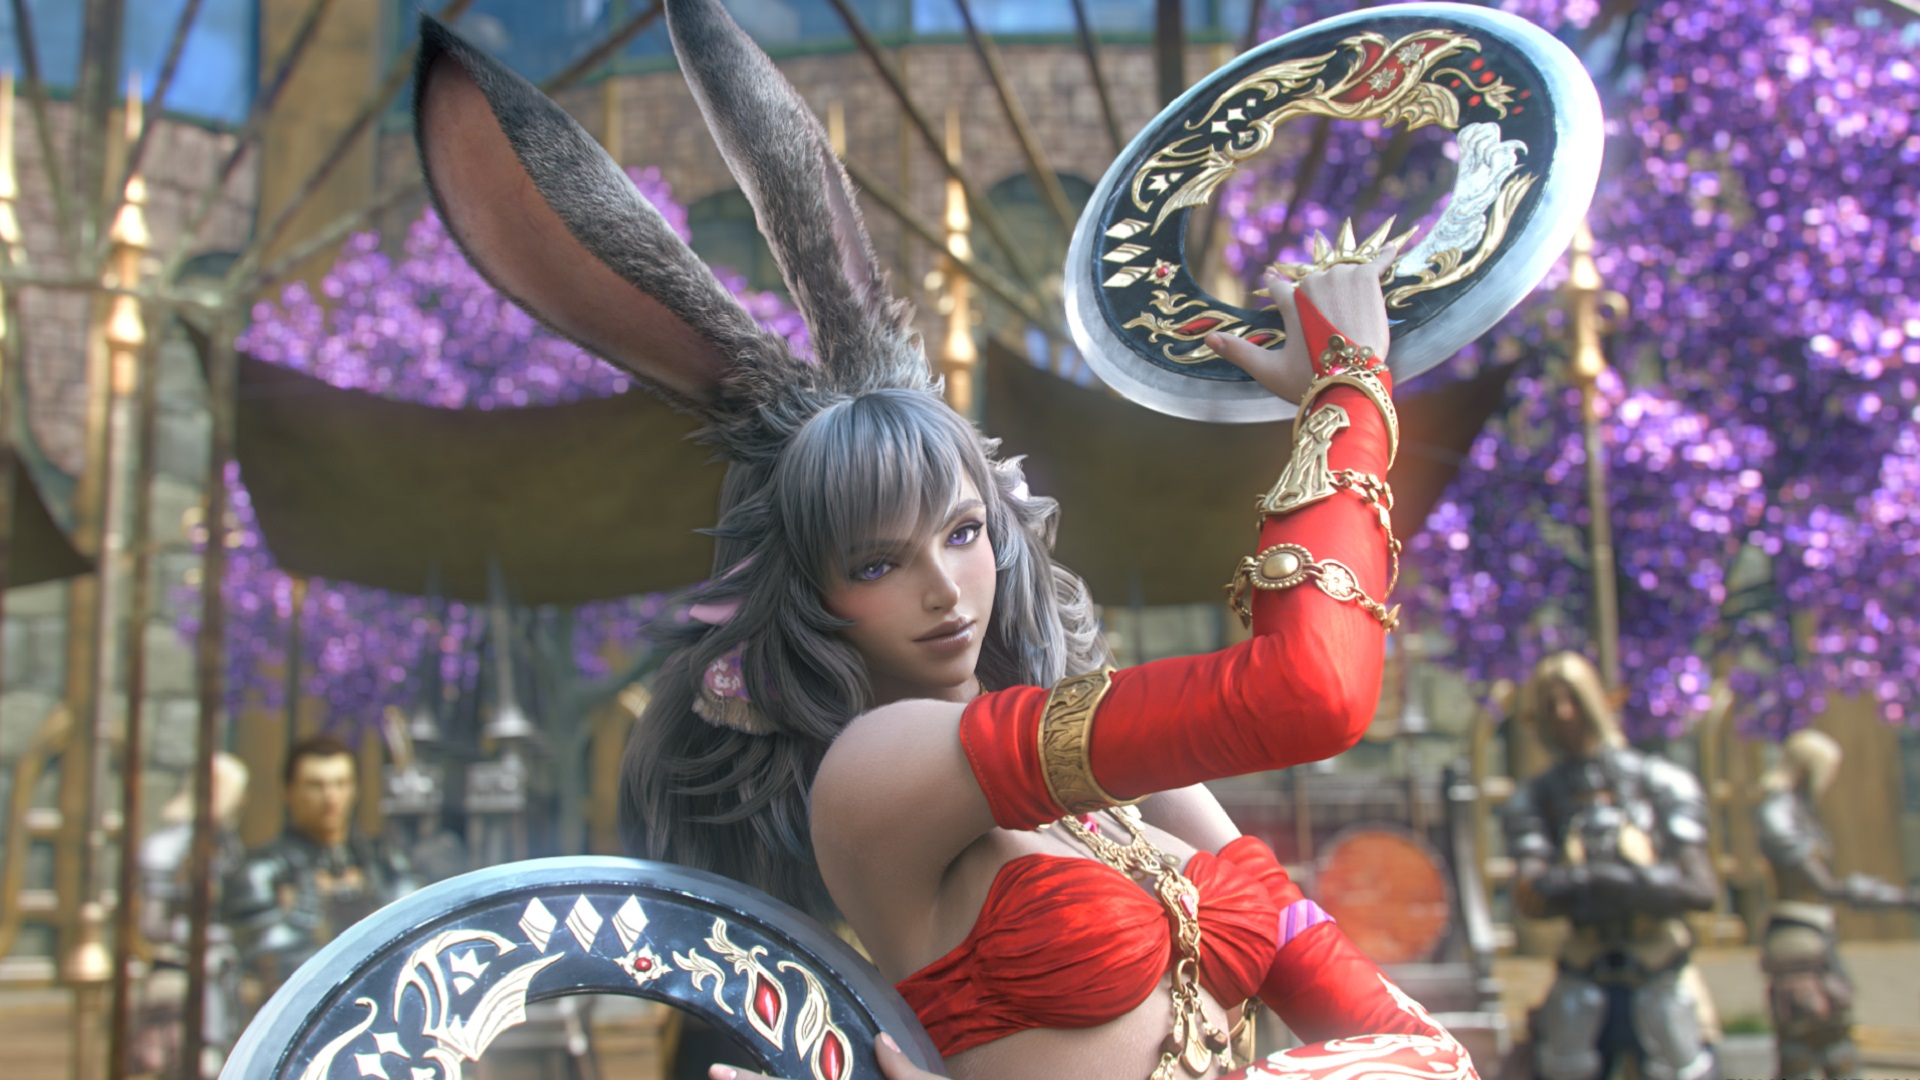 Final Fantasy XIV guide: Where to find the new Gunbreaker and Dancer job quests screenshot